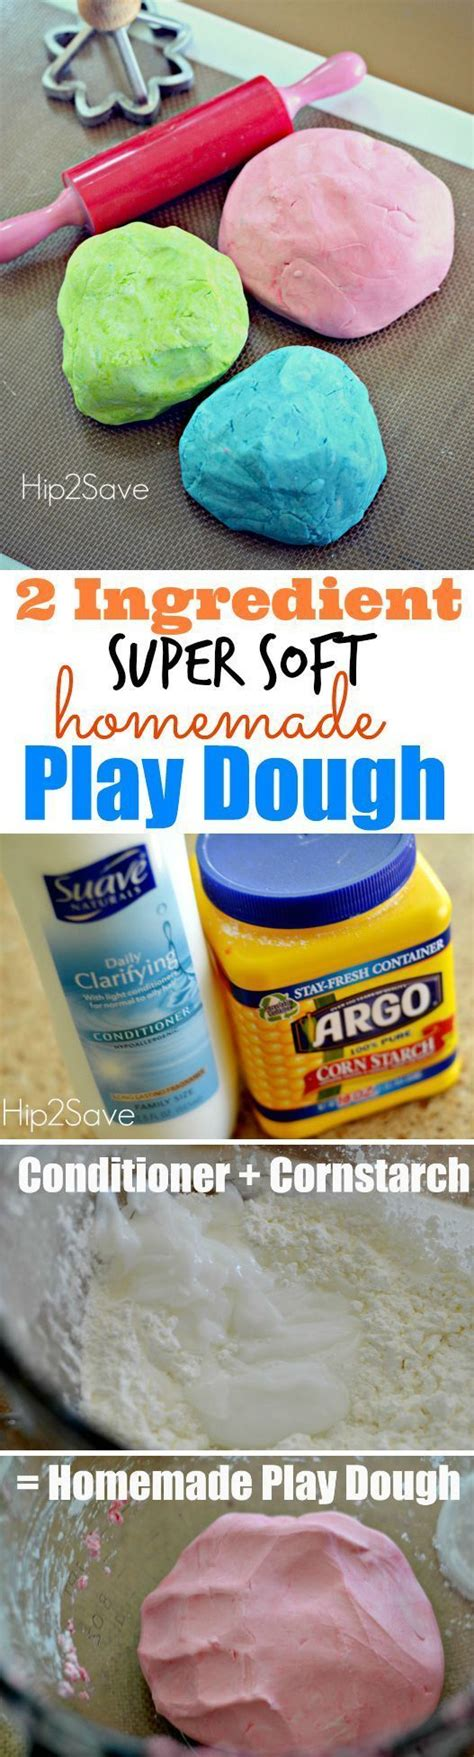 play dough mainkan doh 2 ingredients kid activities and play dough on